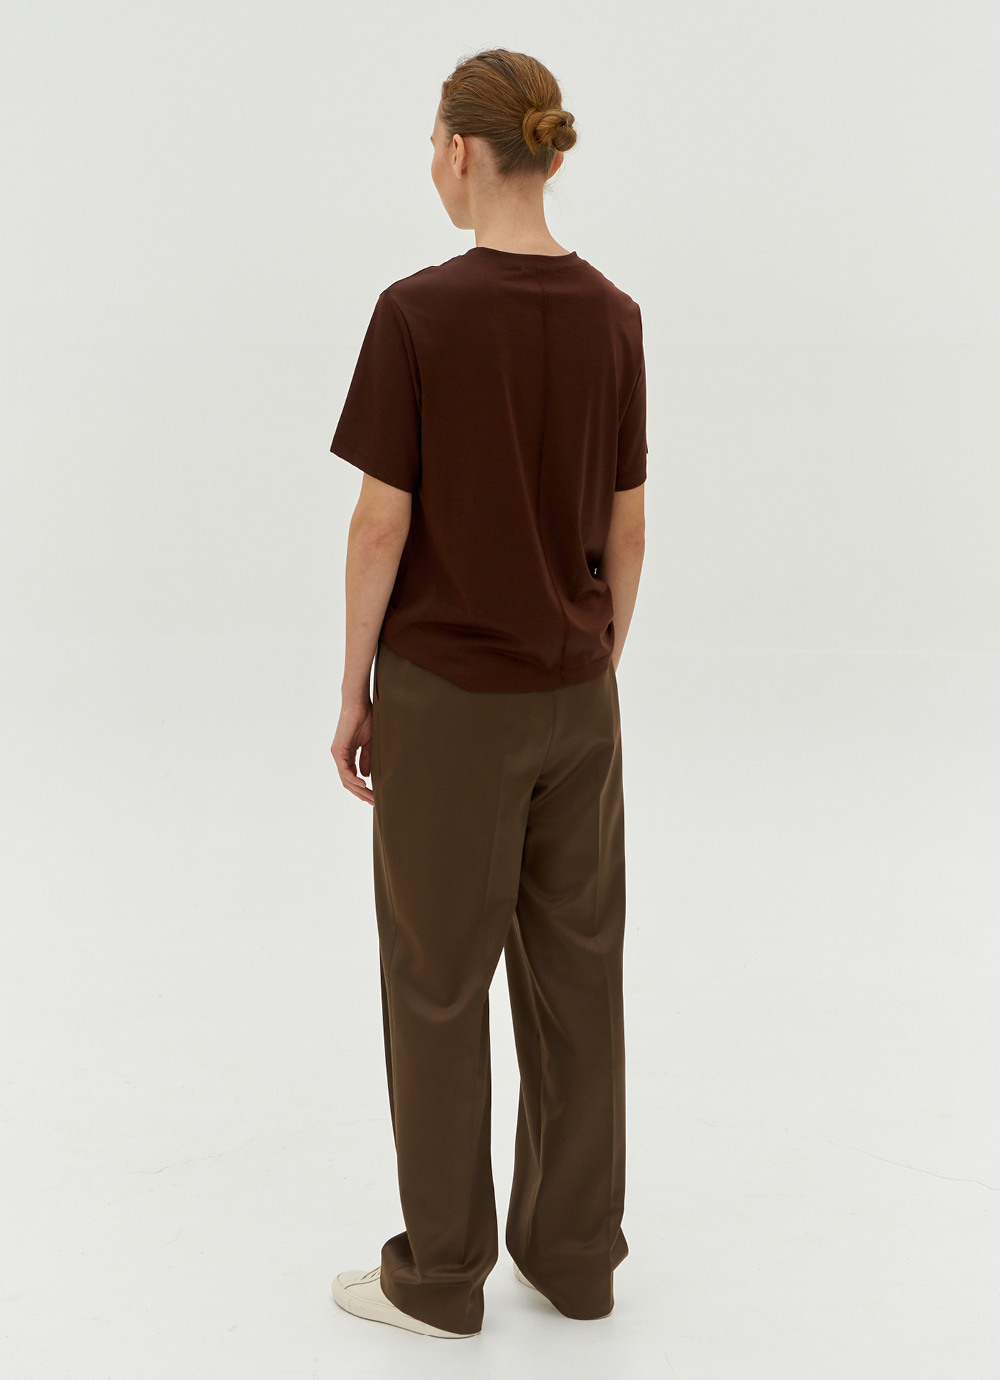 Embroidered T-shirt [Brown]